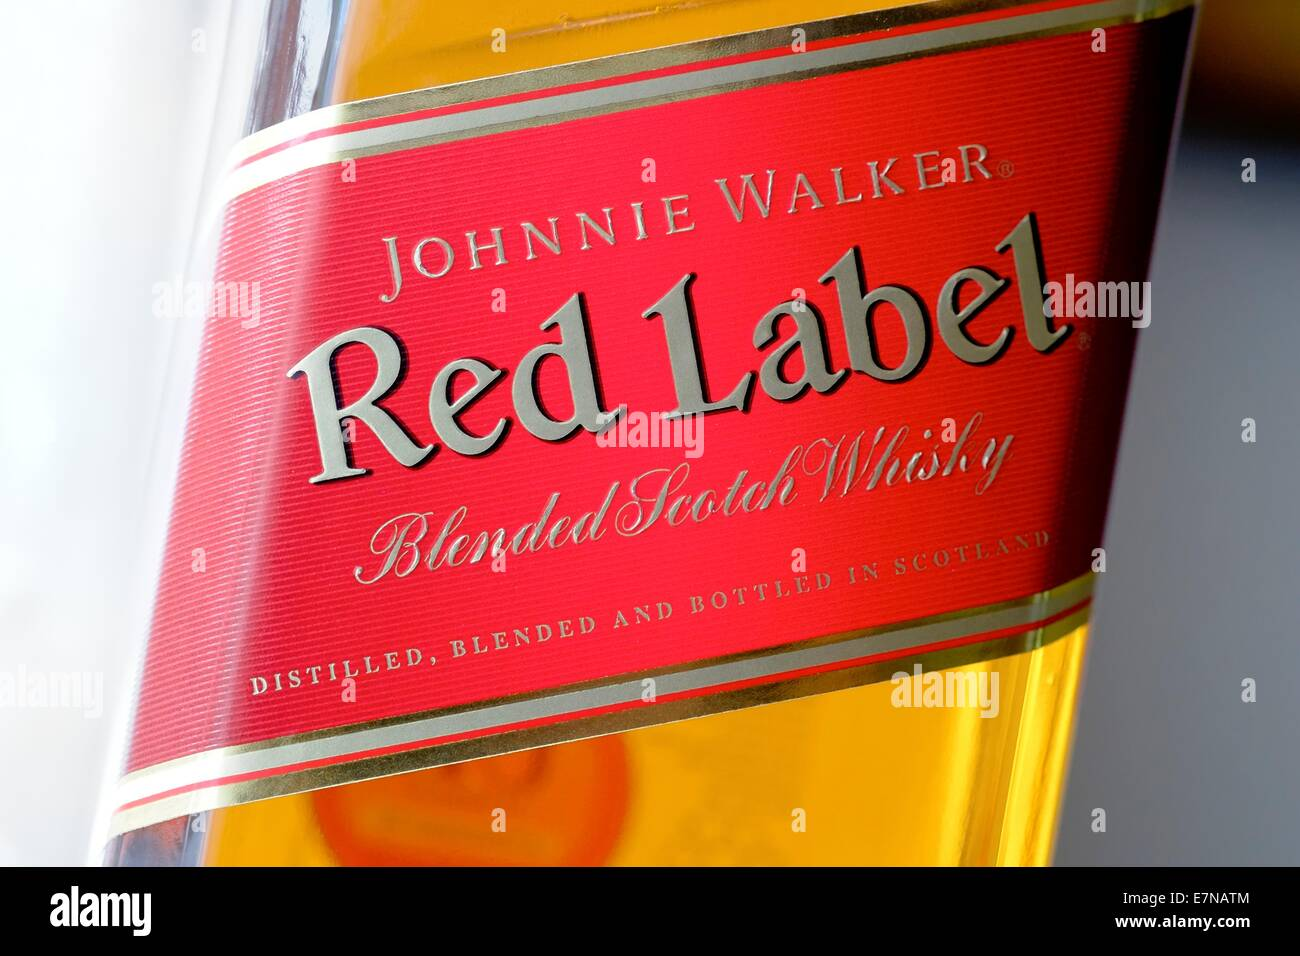 Whisky Red Label Bottle Glass Stock Photos Whisky Red Label Bottle